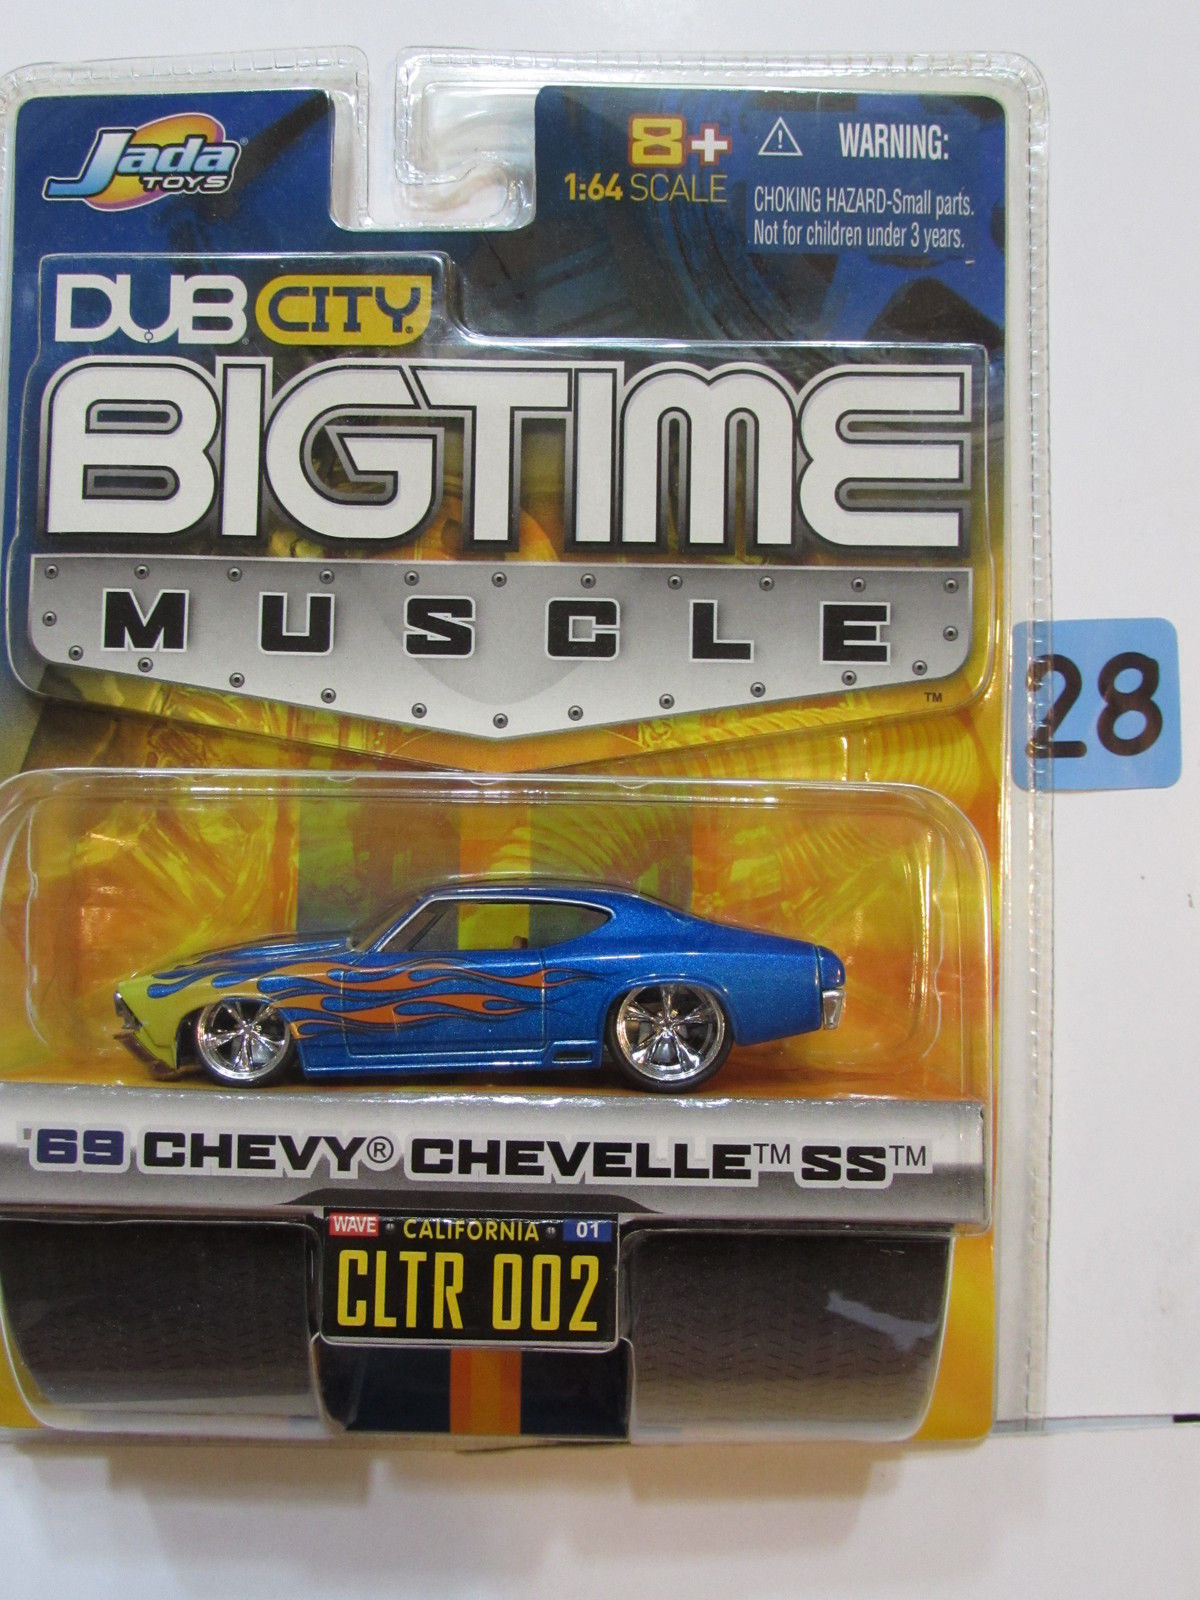 JADA DUB CITY BIGTIME MUSCLE '69 CHEVY CHEVELLE SS CLTR 002